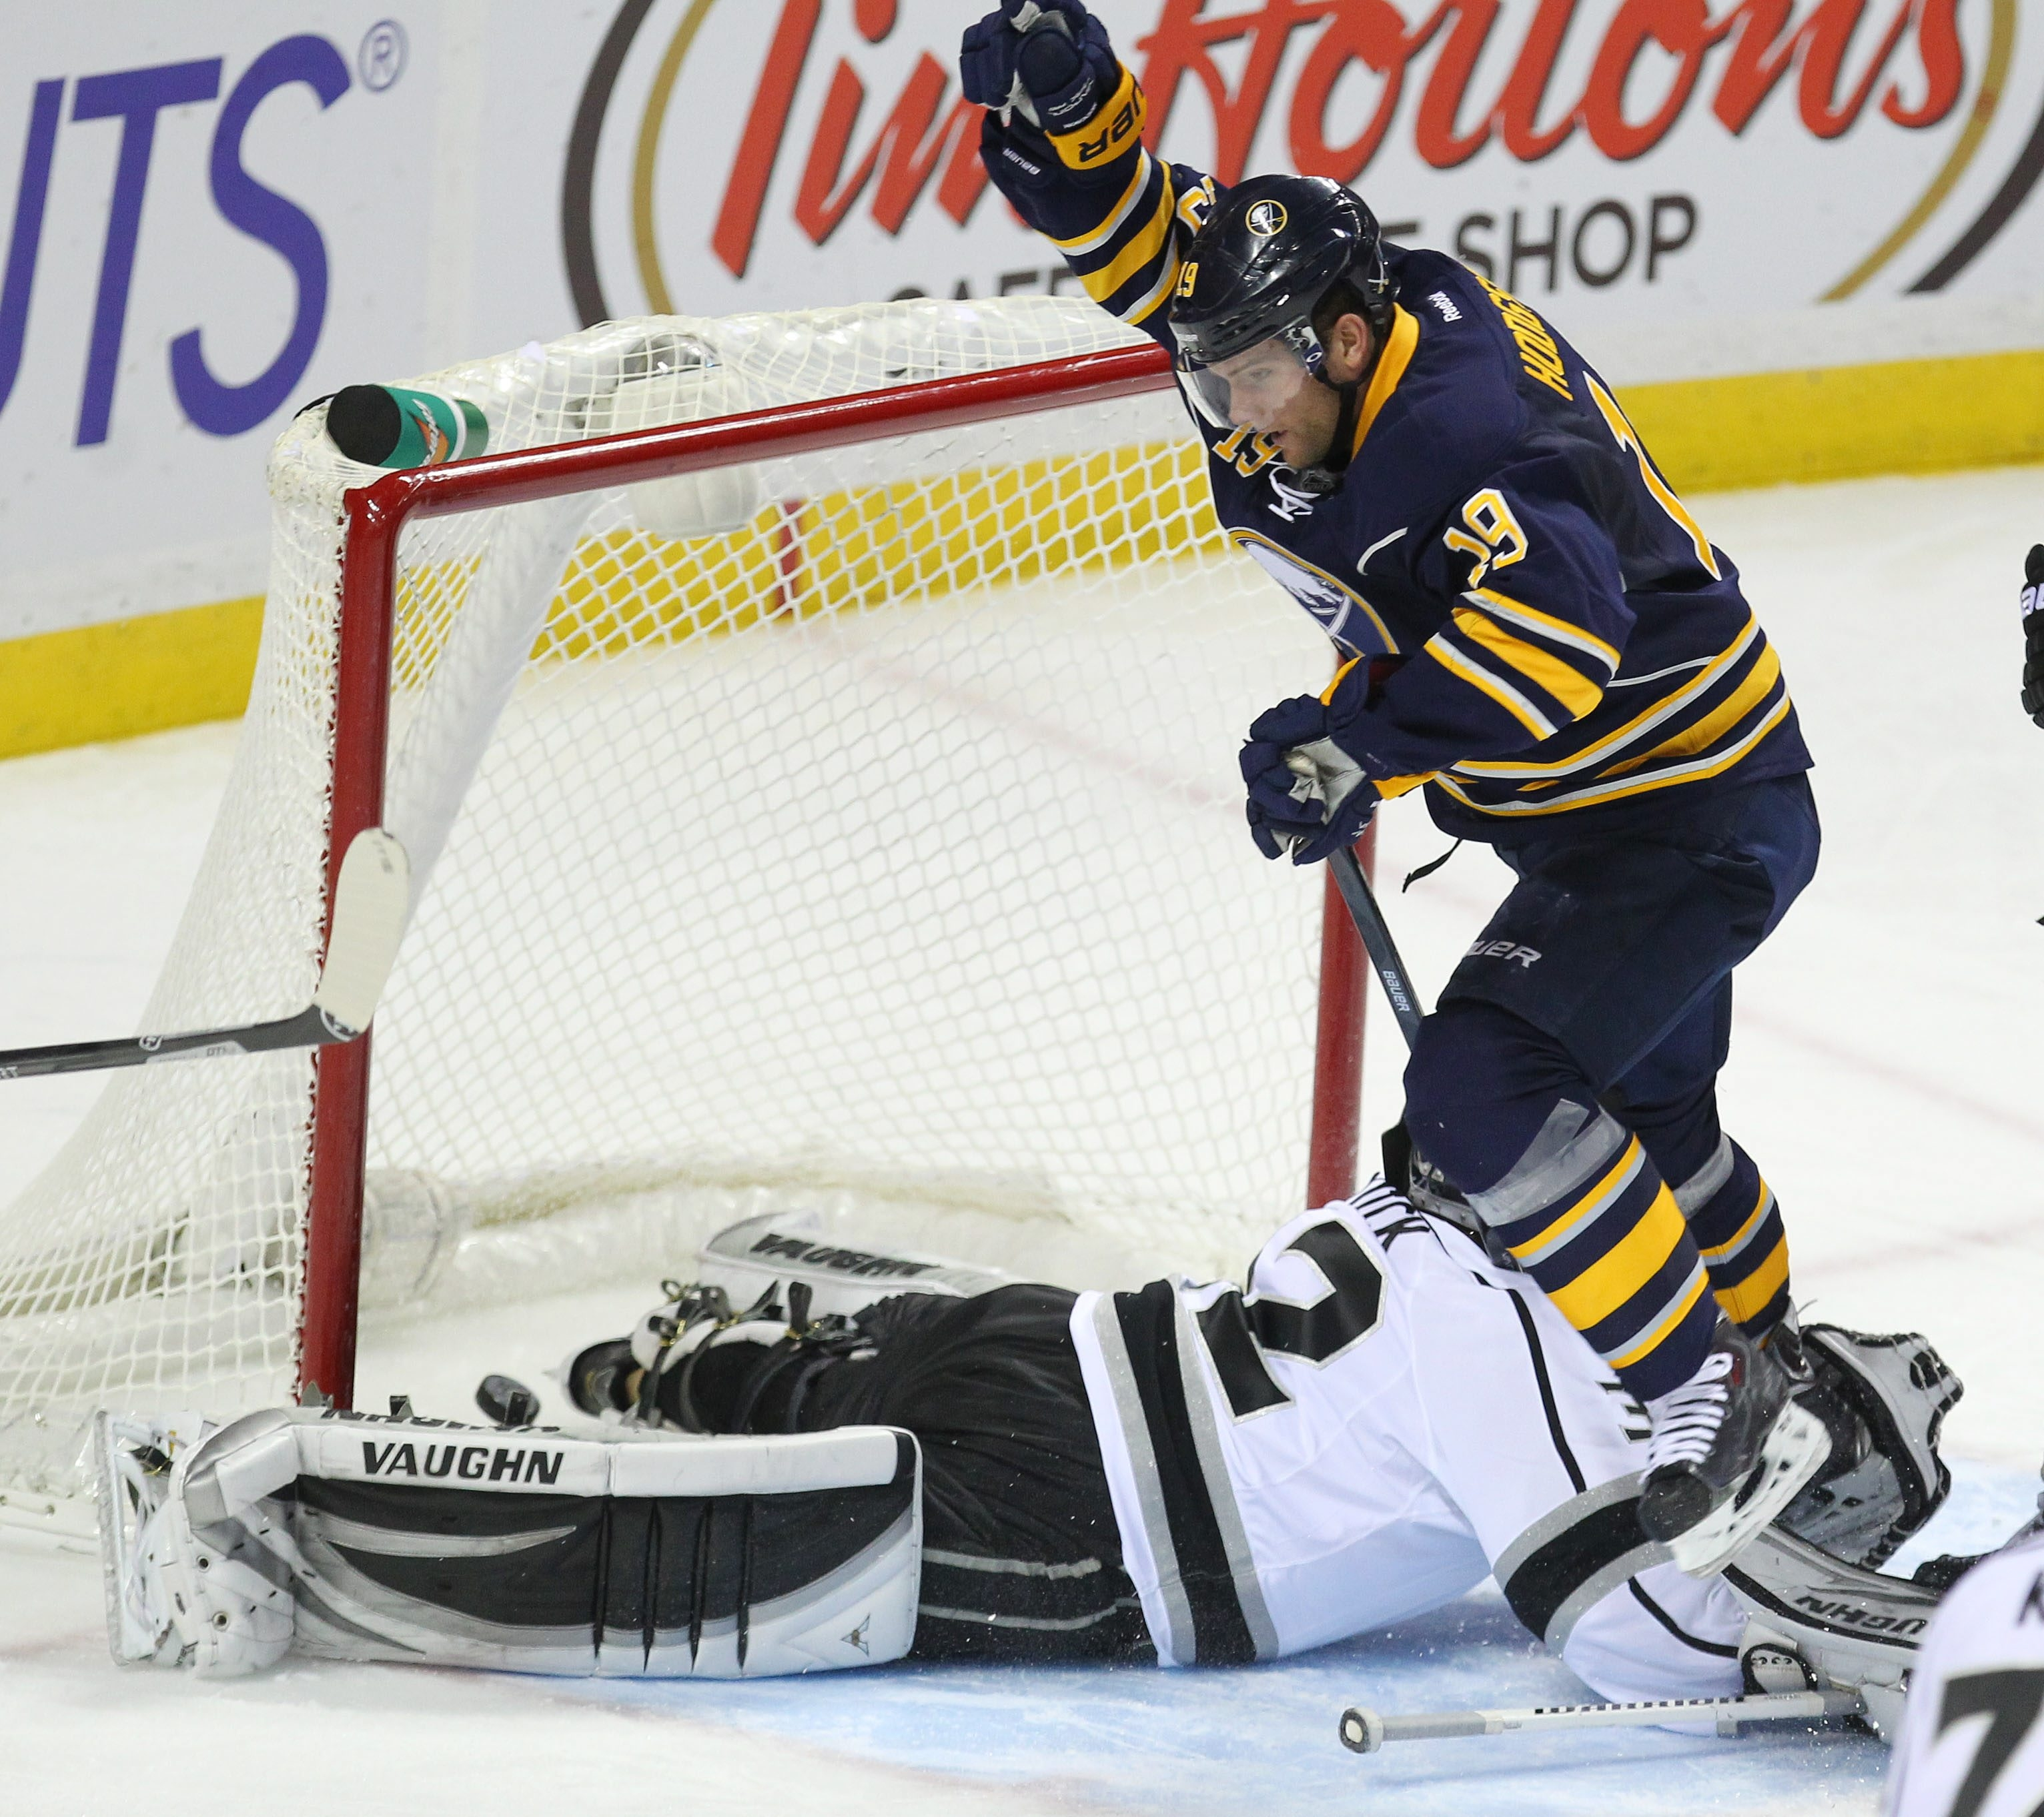 The Sabres' Cody Hodgson puts his second goal past the Kings' Jonathan Quick in the third period. For a video and photo gallery from the game, go to BuffaloNews.com.